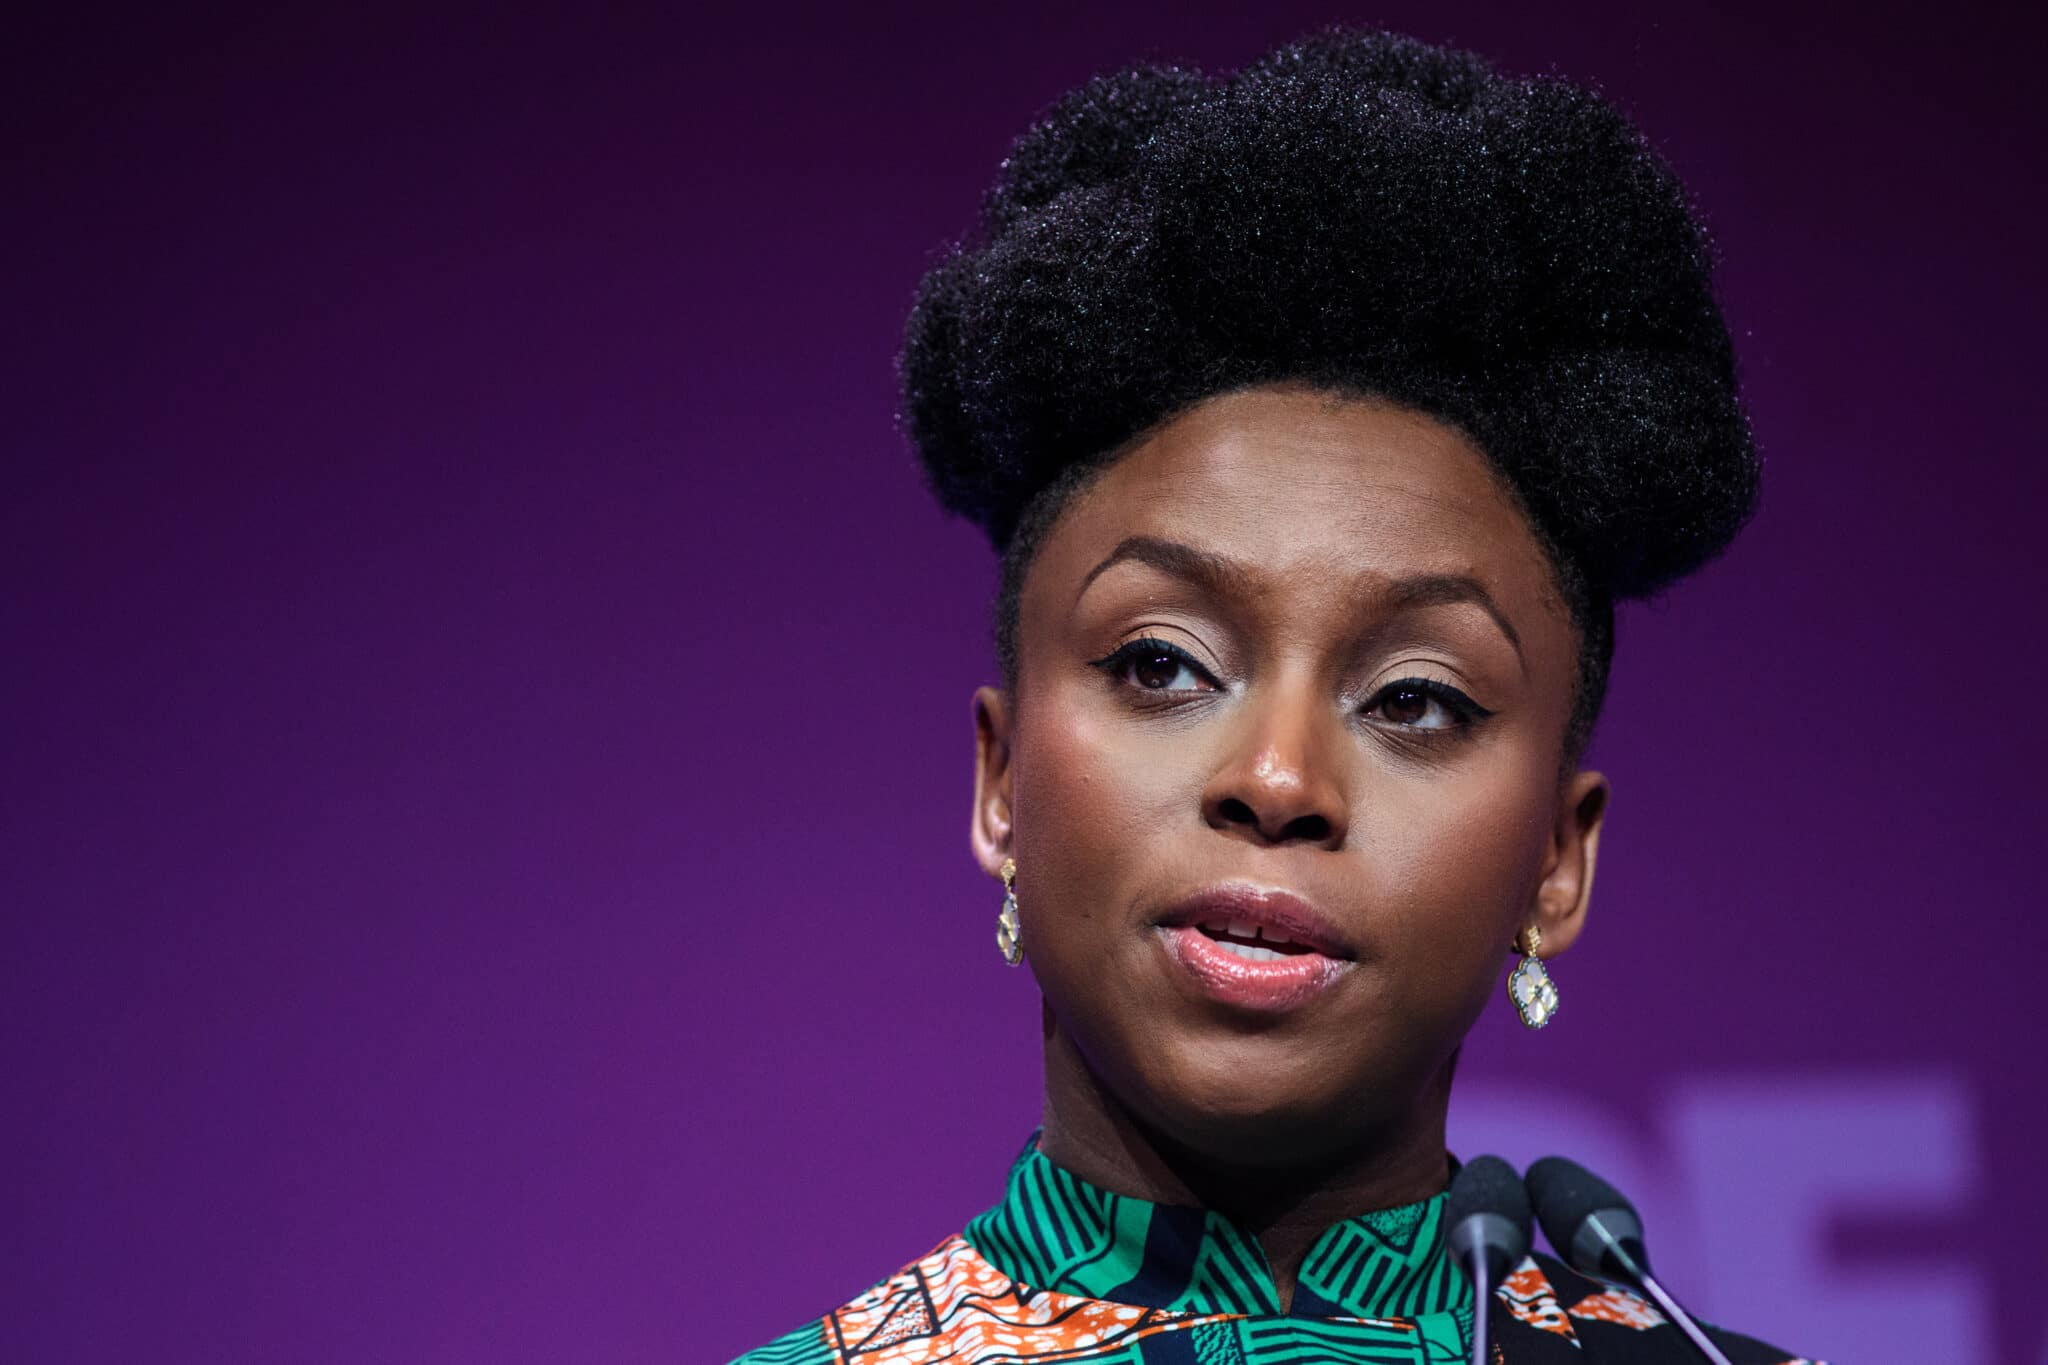 Author Chimamanda Ngozi Adichie pens lengthy essay condemning 'two queer writers'